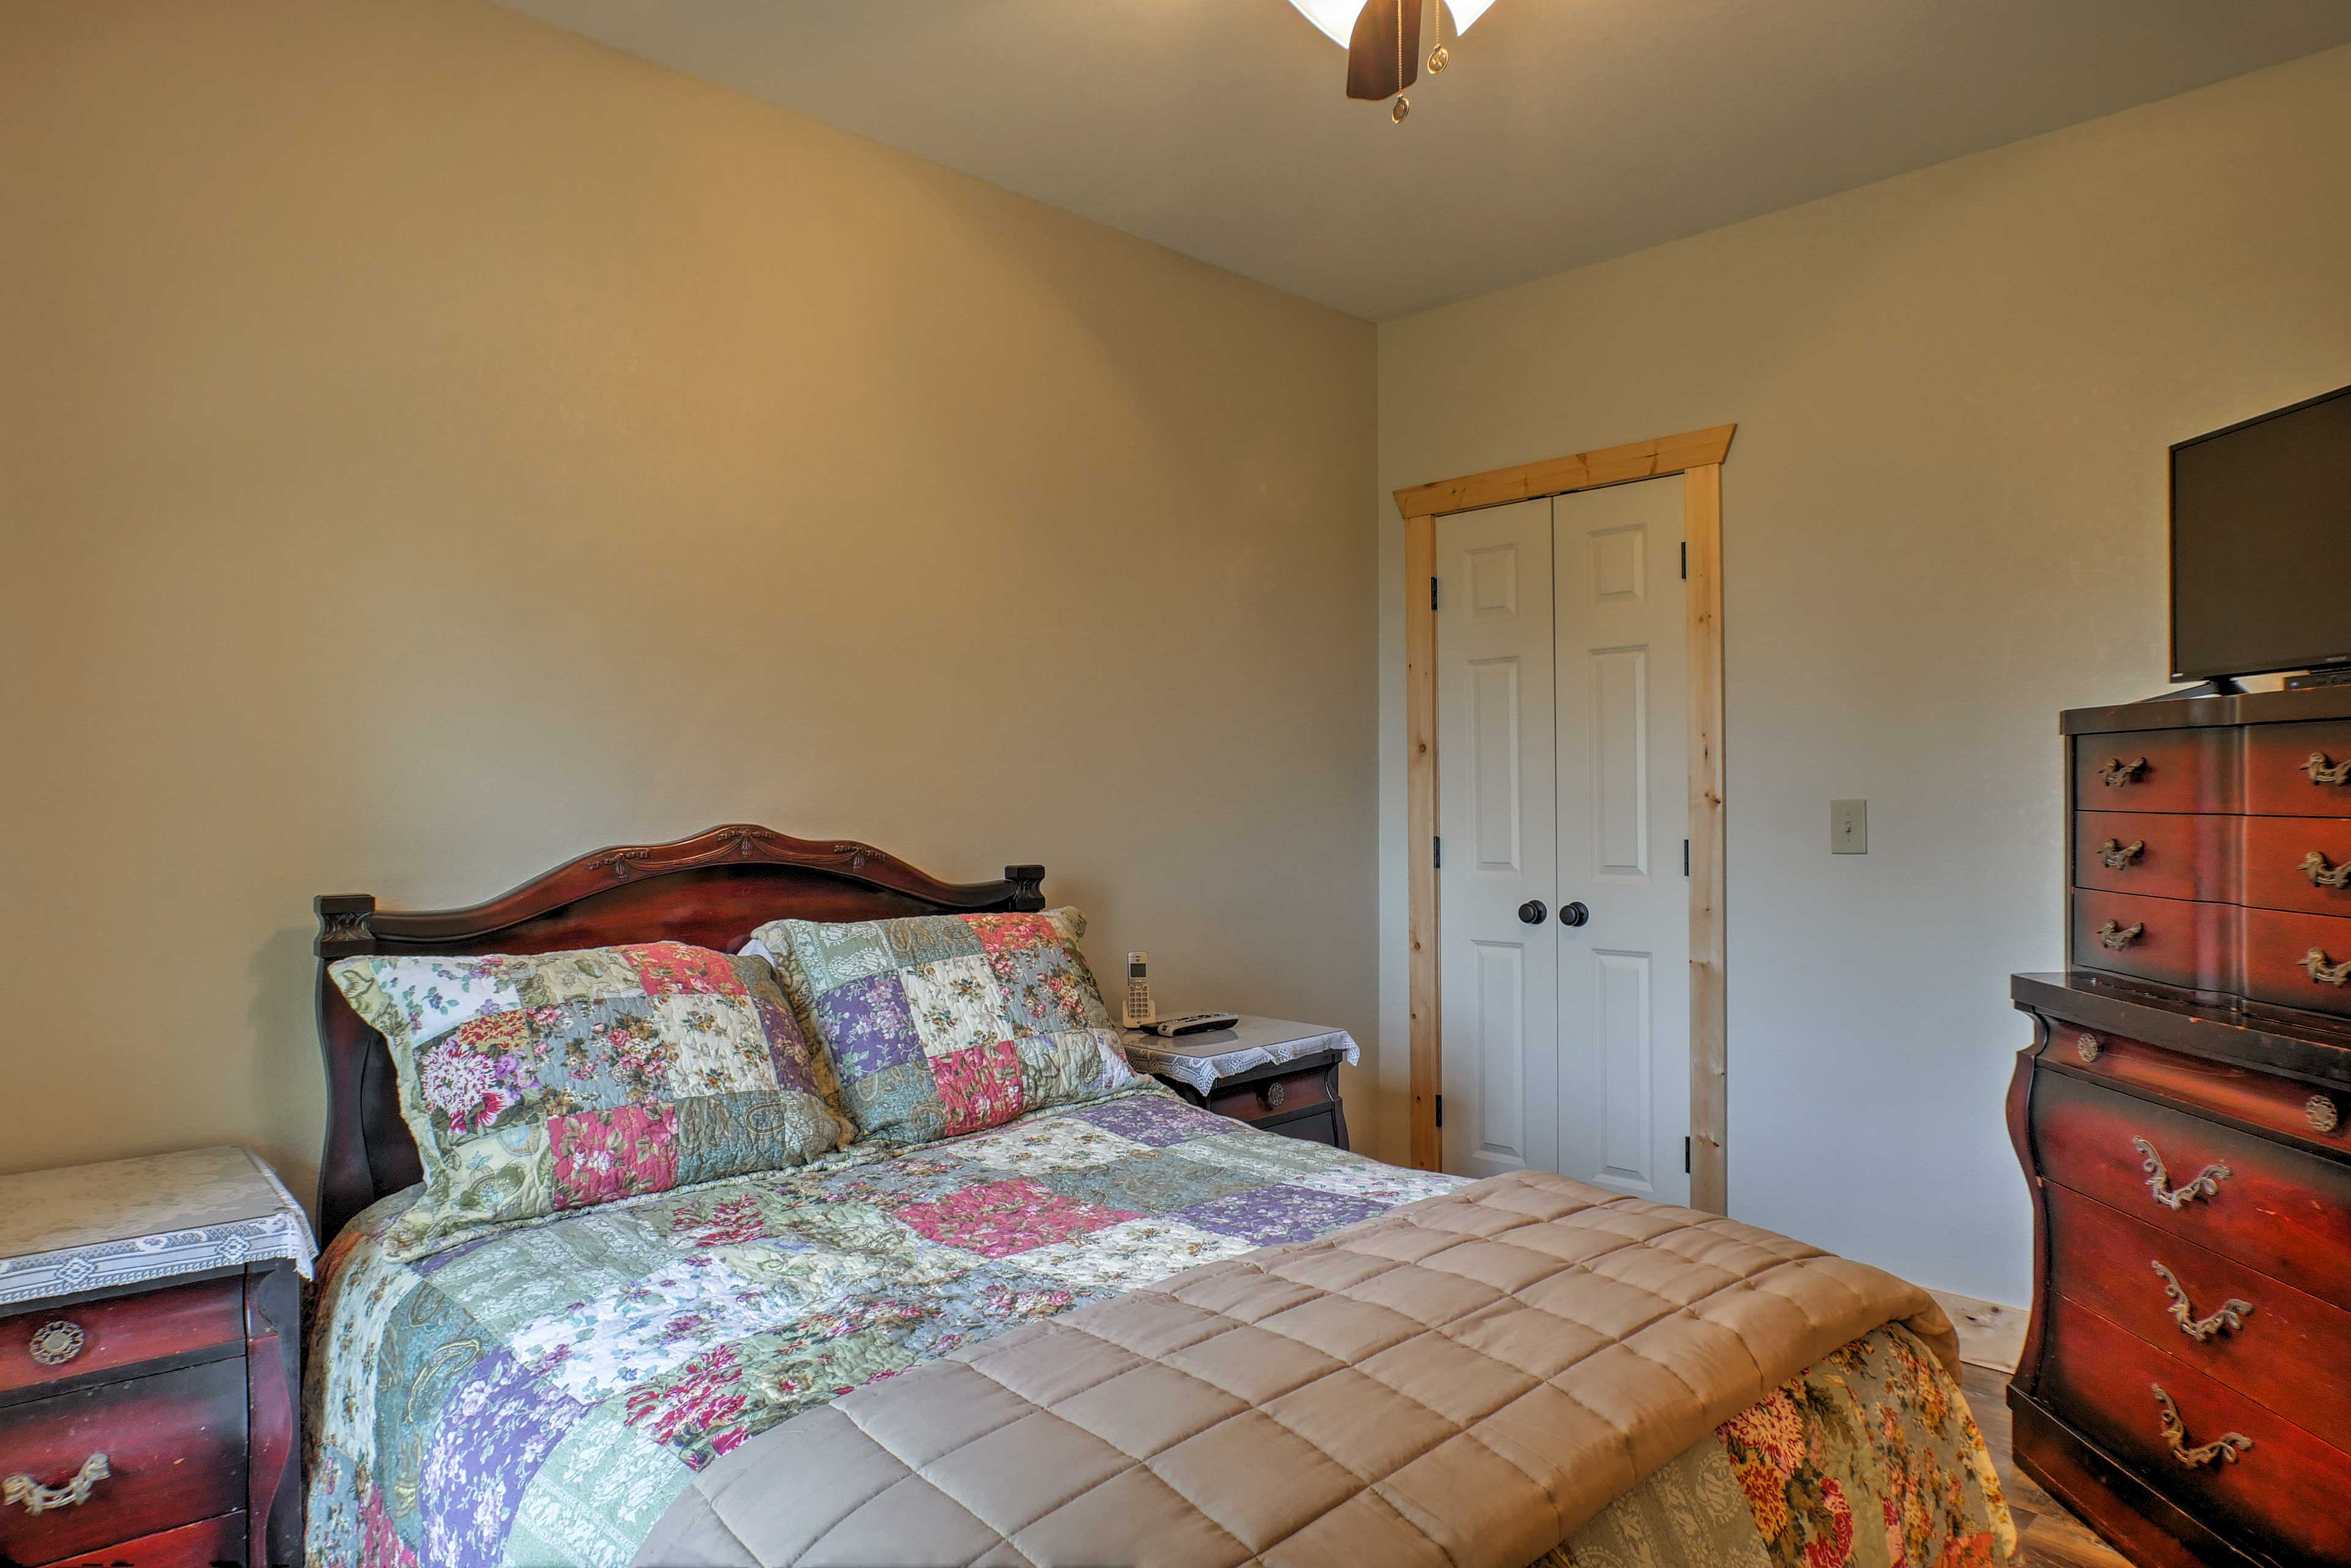 There's a cozy queen bed in each bedroom.